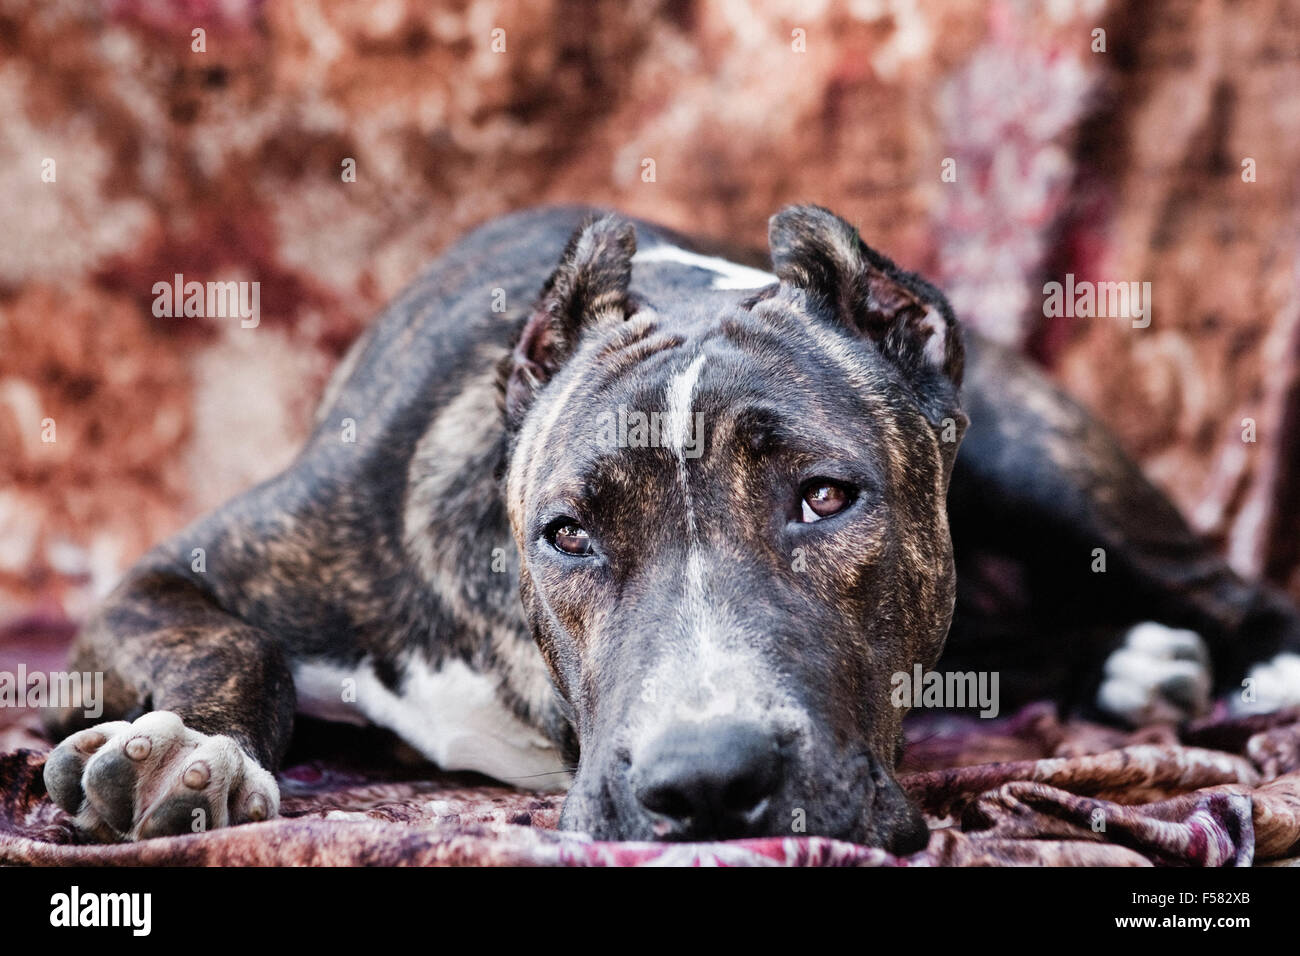 Adult Cane Corso dog laying down on a multi-colored fabric backdrop facing camera with eye contact Stock Photo